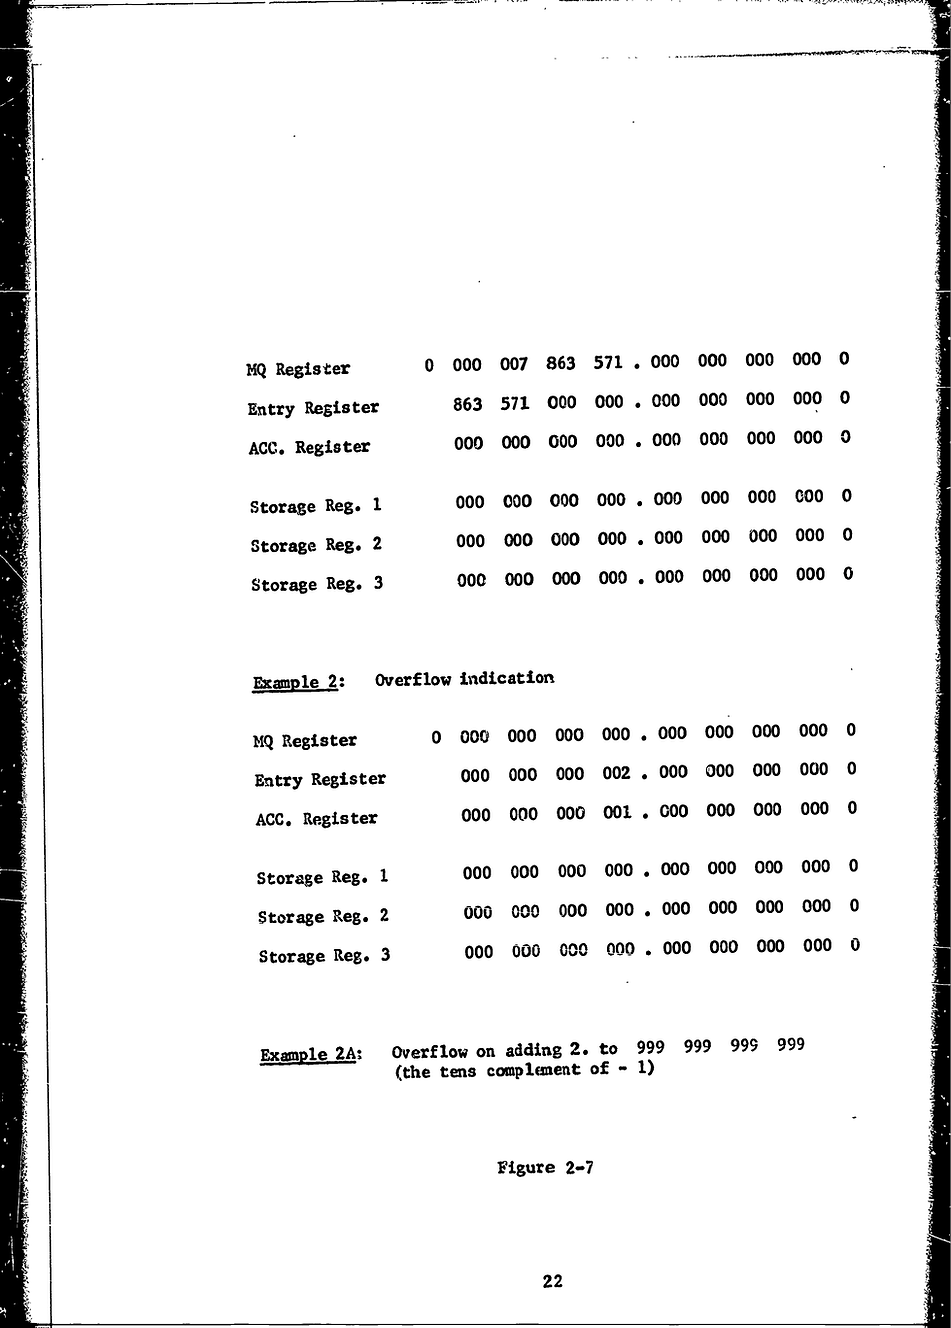 WYLE Instruction_Page_032_Image_0001.tif